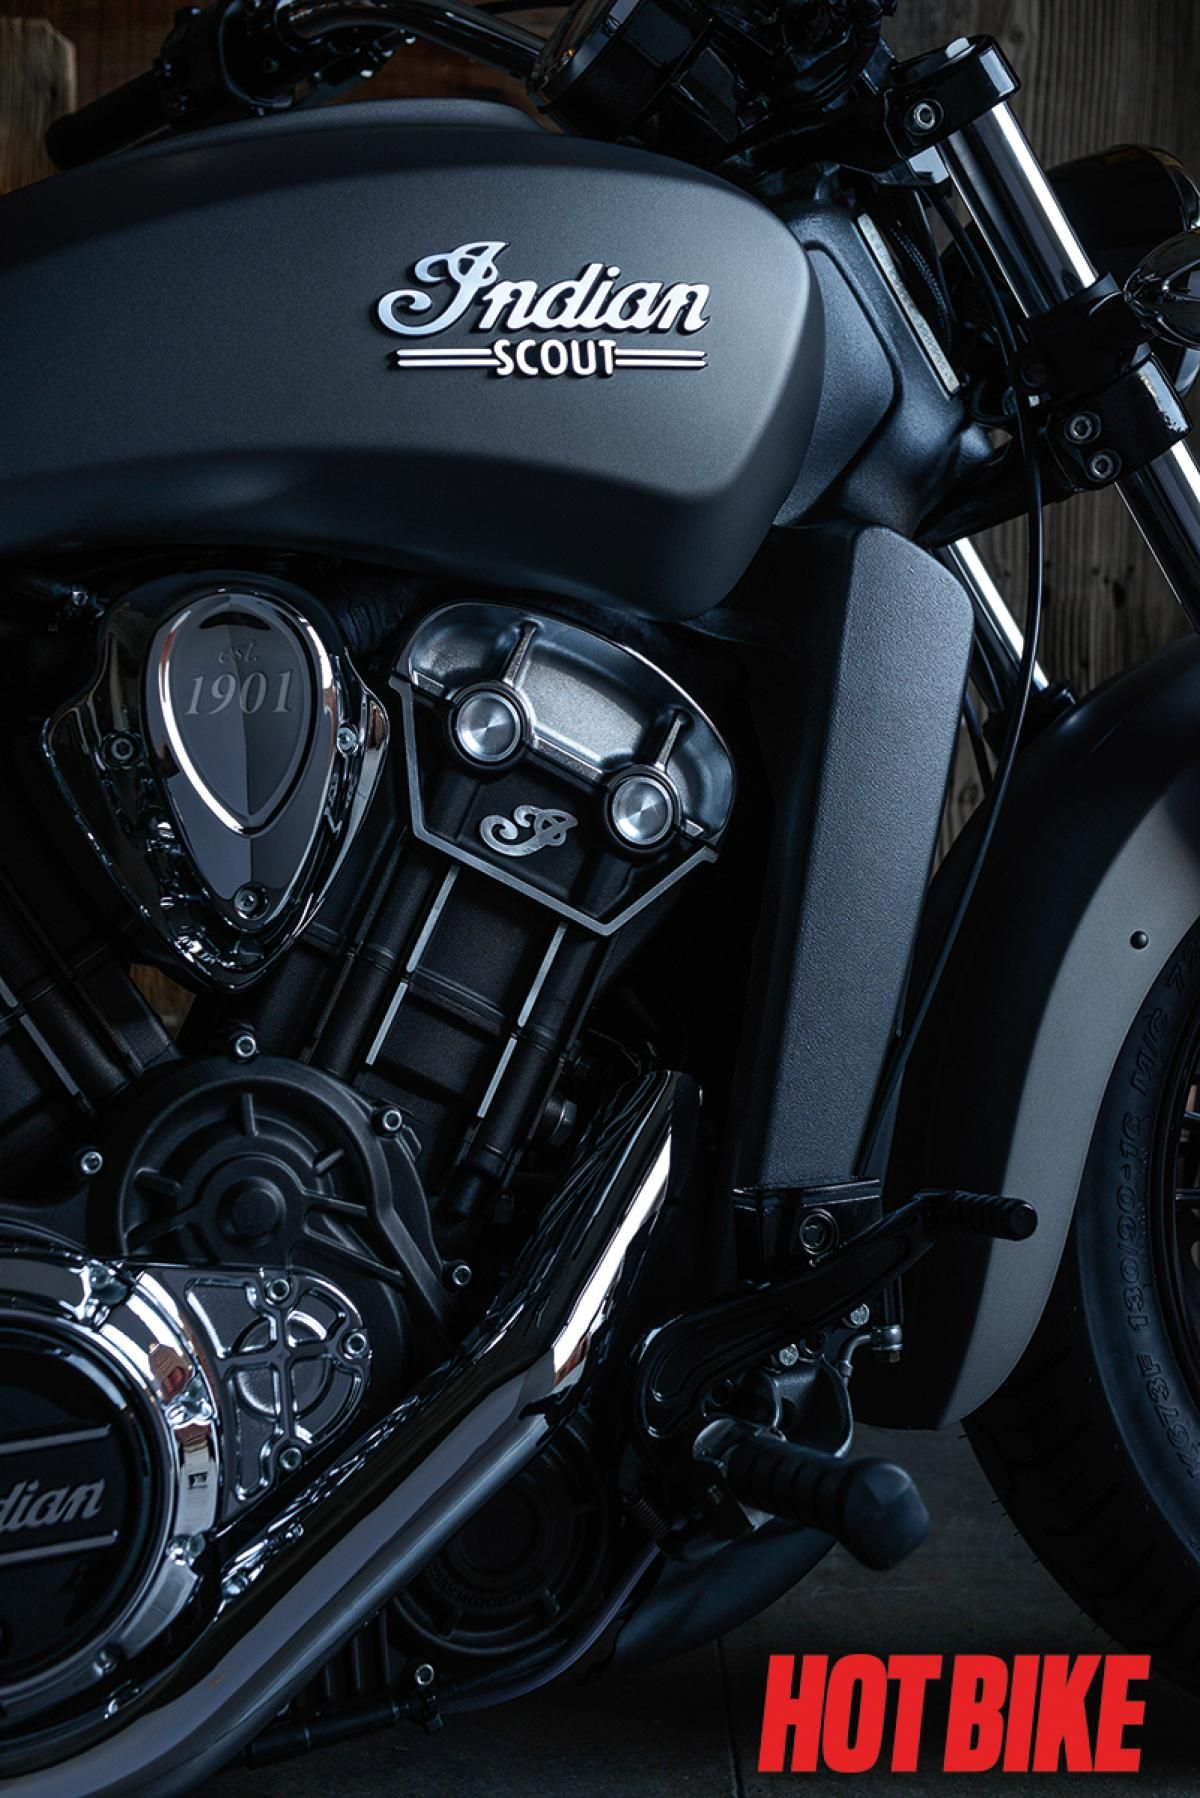 2015 Indian Scout Photo Gallery Indian Motorcycle Scout Indian Scout Indian Motorcycle [ 1798 x 1200 Pixel ]